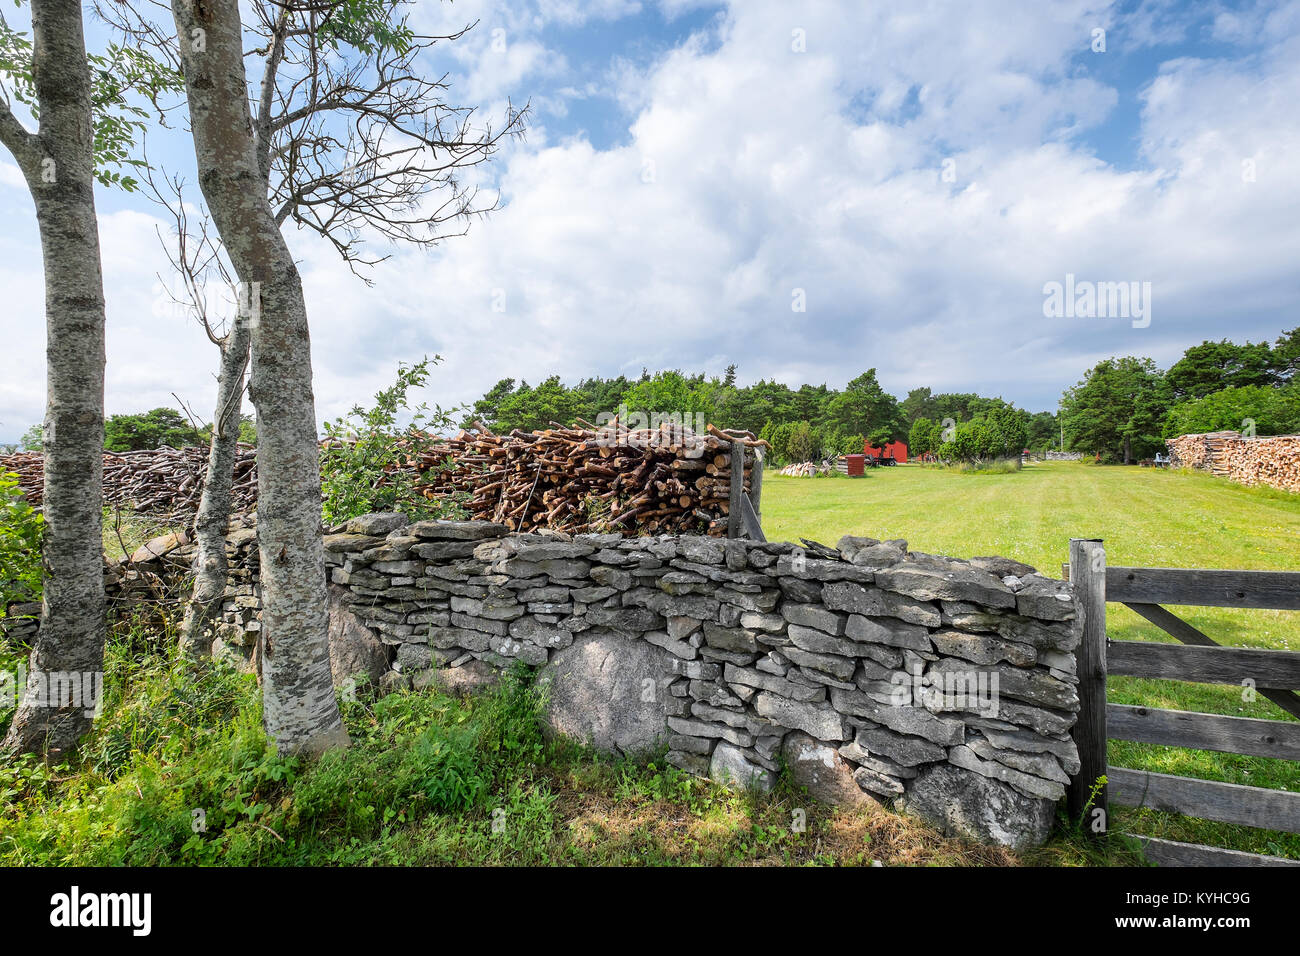 Swedish country landscape with old stone wall and stacked firewood. Location: Gotland, Sweden - Stock Image